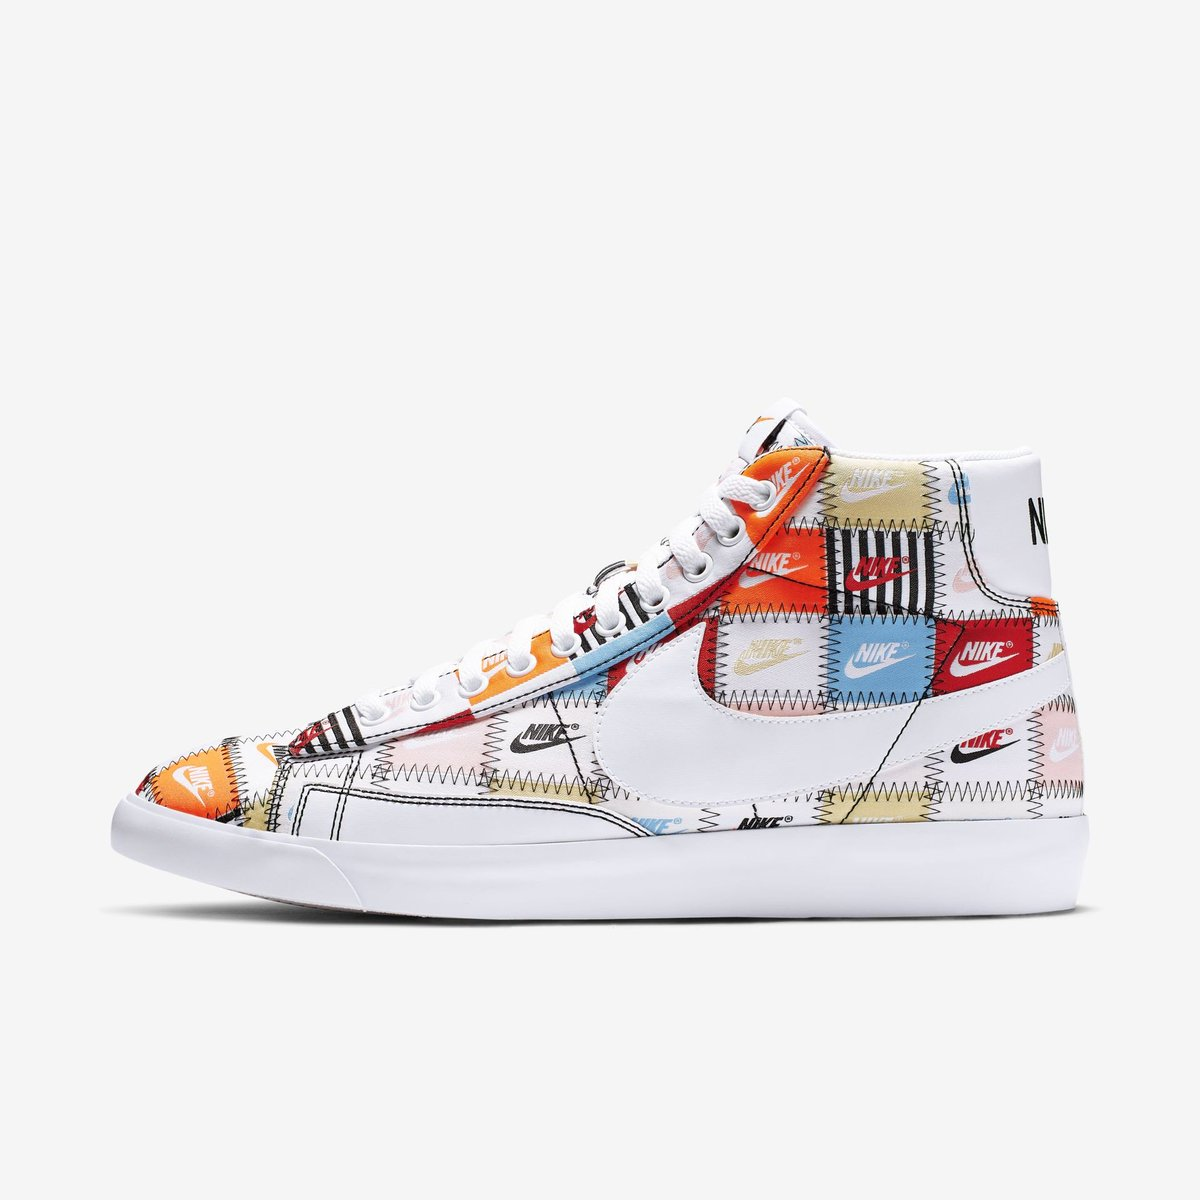 "e454500dfcc1 Nike Blazer ""Patchwork"" available now on Footaction  115 + FREE shipping  Link -  https   go.j23app.com c3r pic.twitter.com AJ5guX4t40"